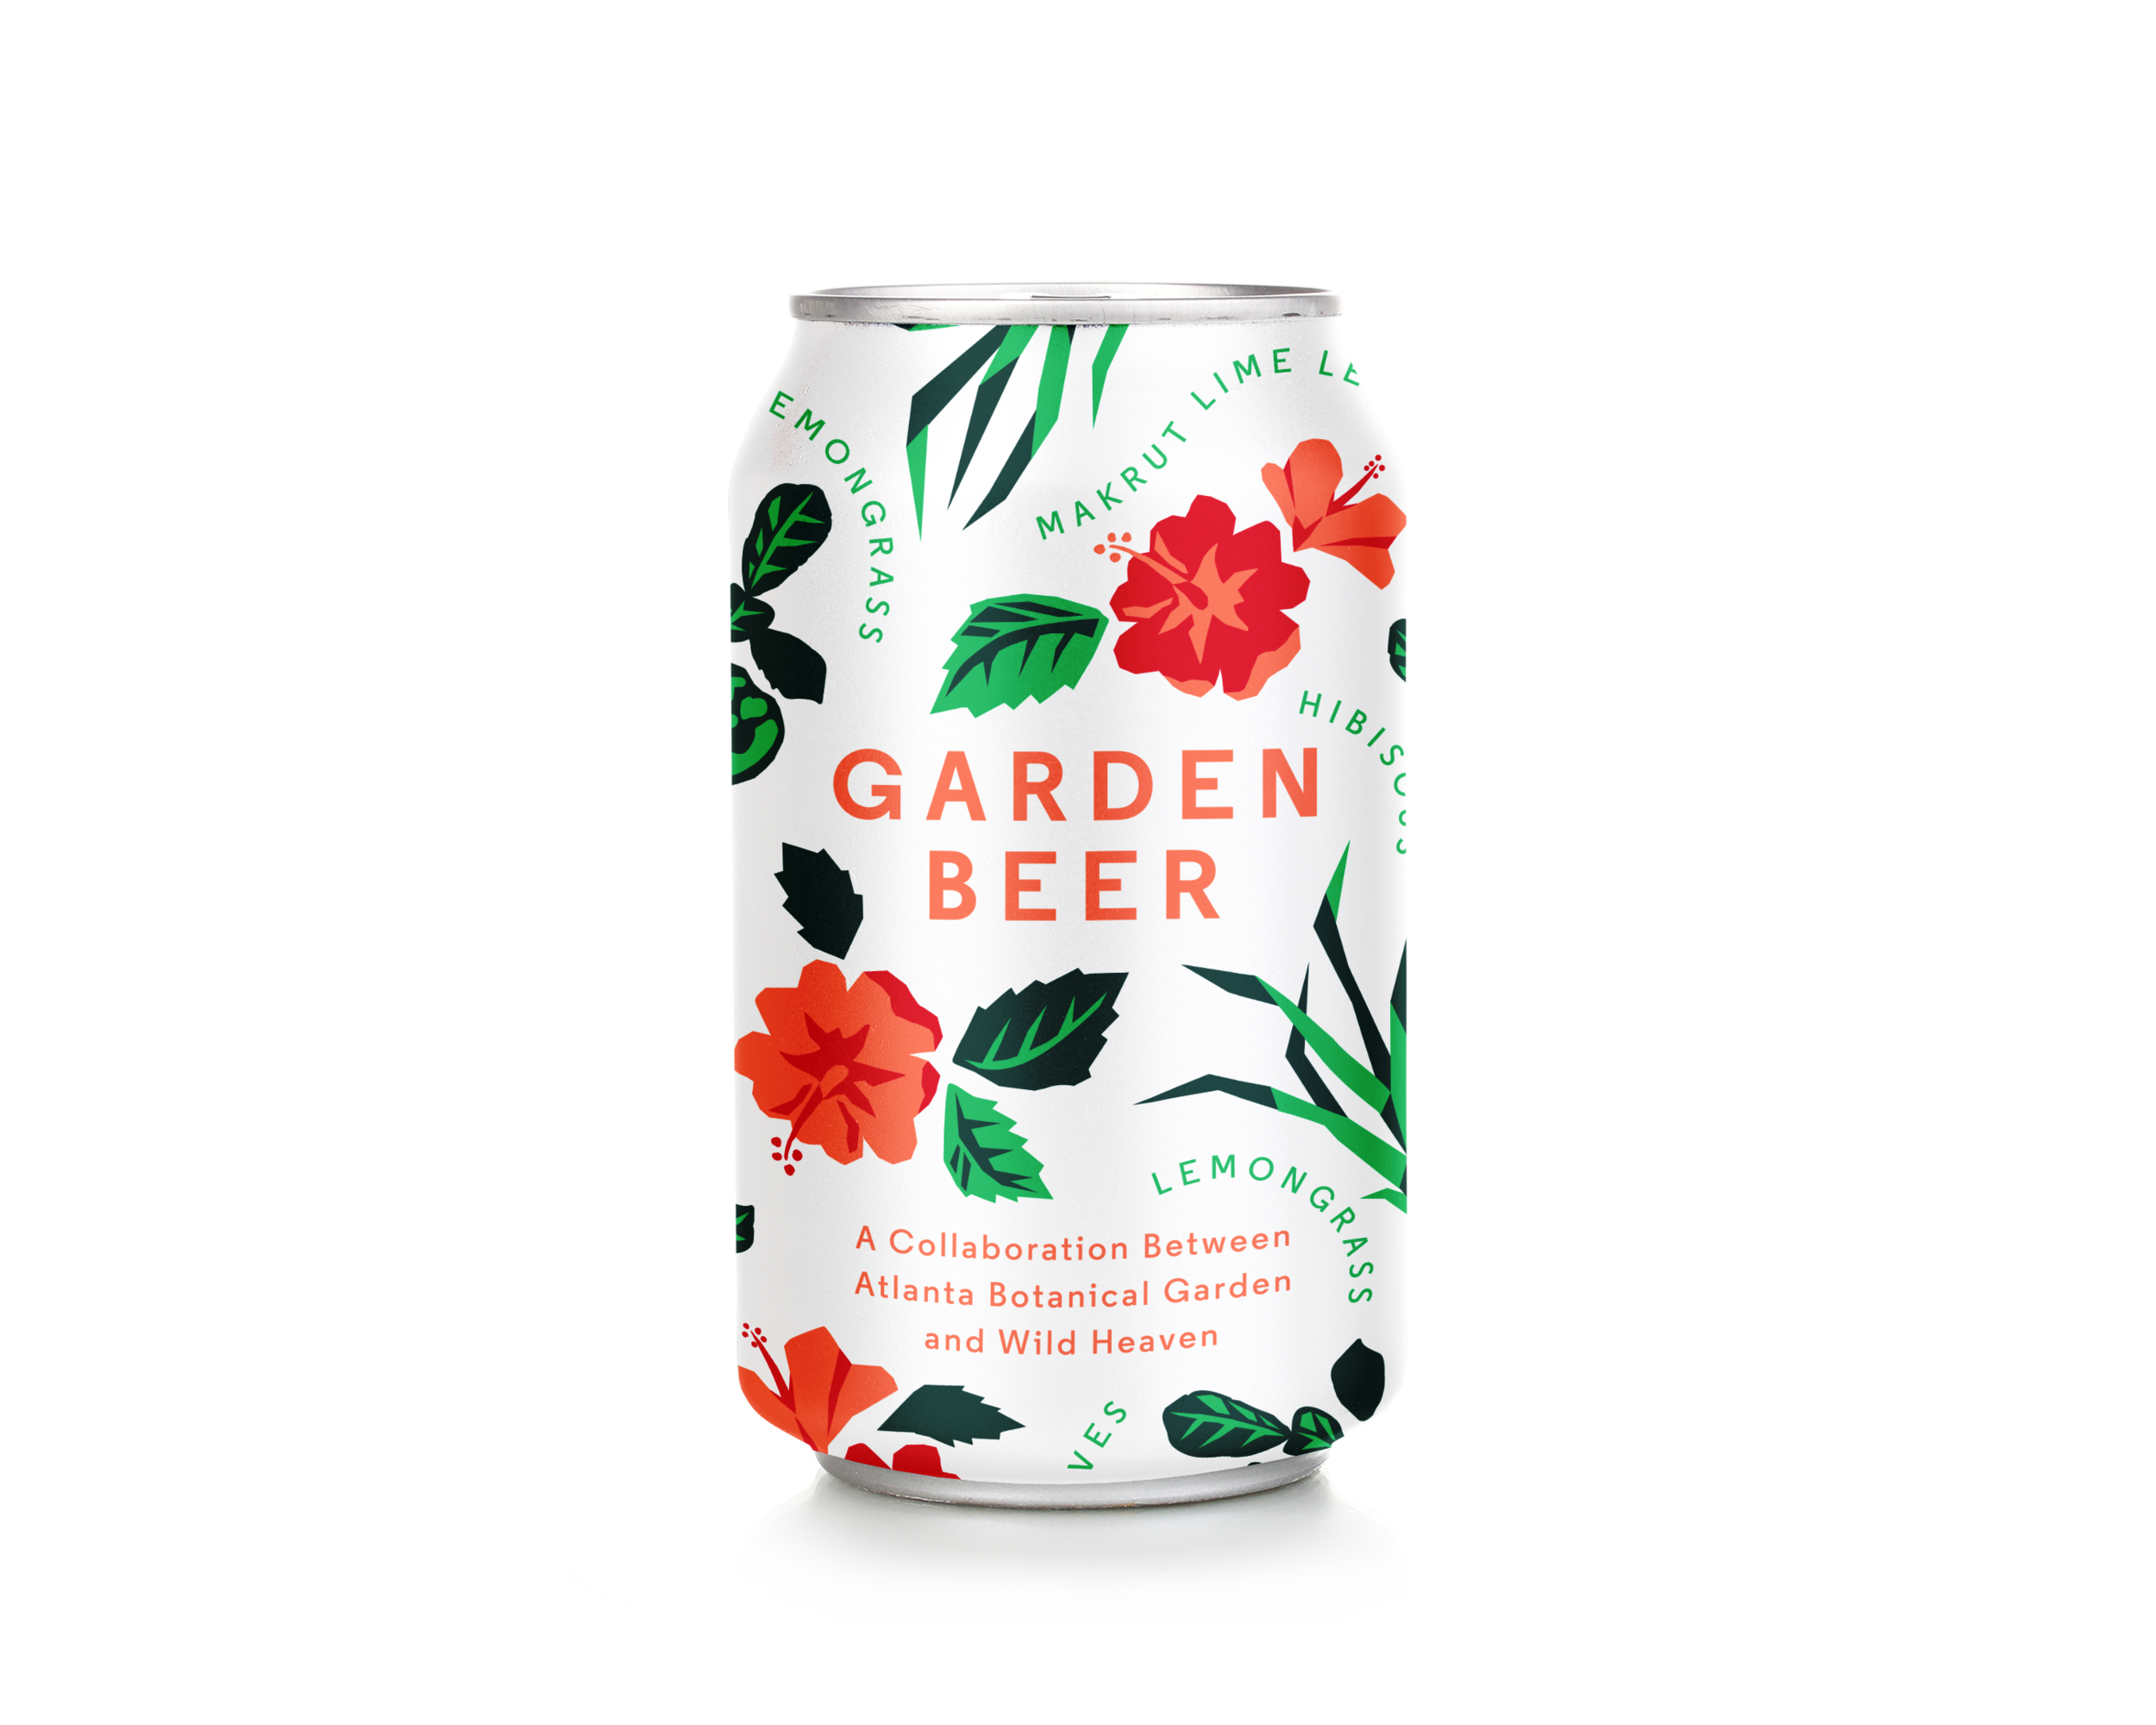 Garden Beer - Golden Ale6% ABVA floral golden ale created in collaboration with the Atlanta Botanical Garden, Garden Beer features hibiscus flowers, lemongrass and Makrut lime leaves. Built to showcase the flavors of the season, new editions will release 2-3 times per year. More seasons to come.